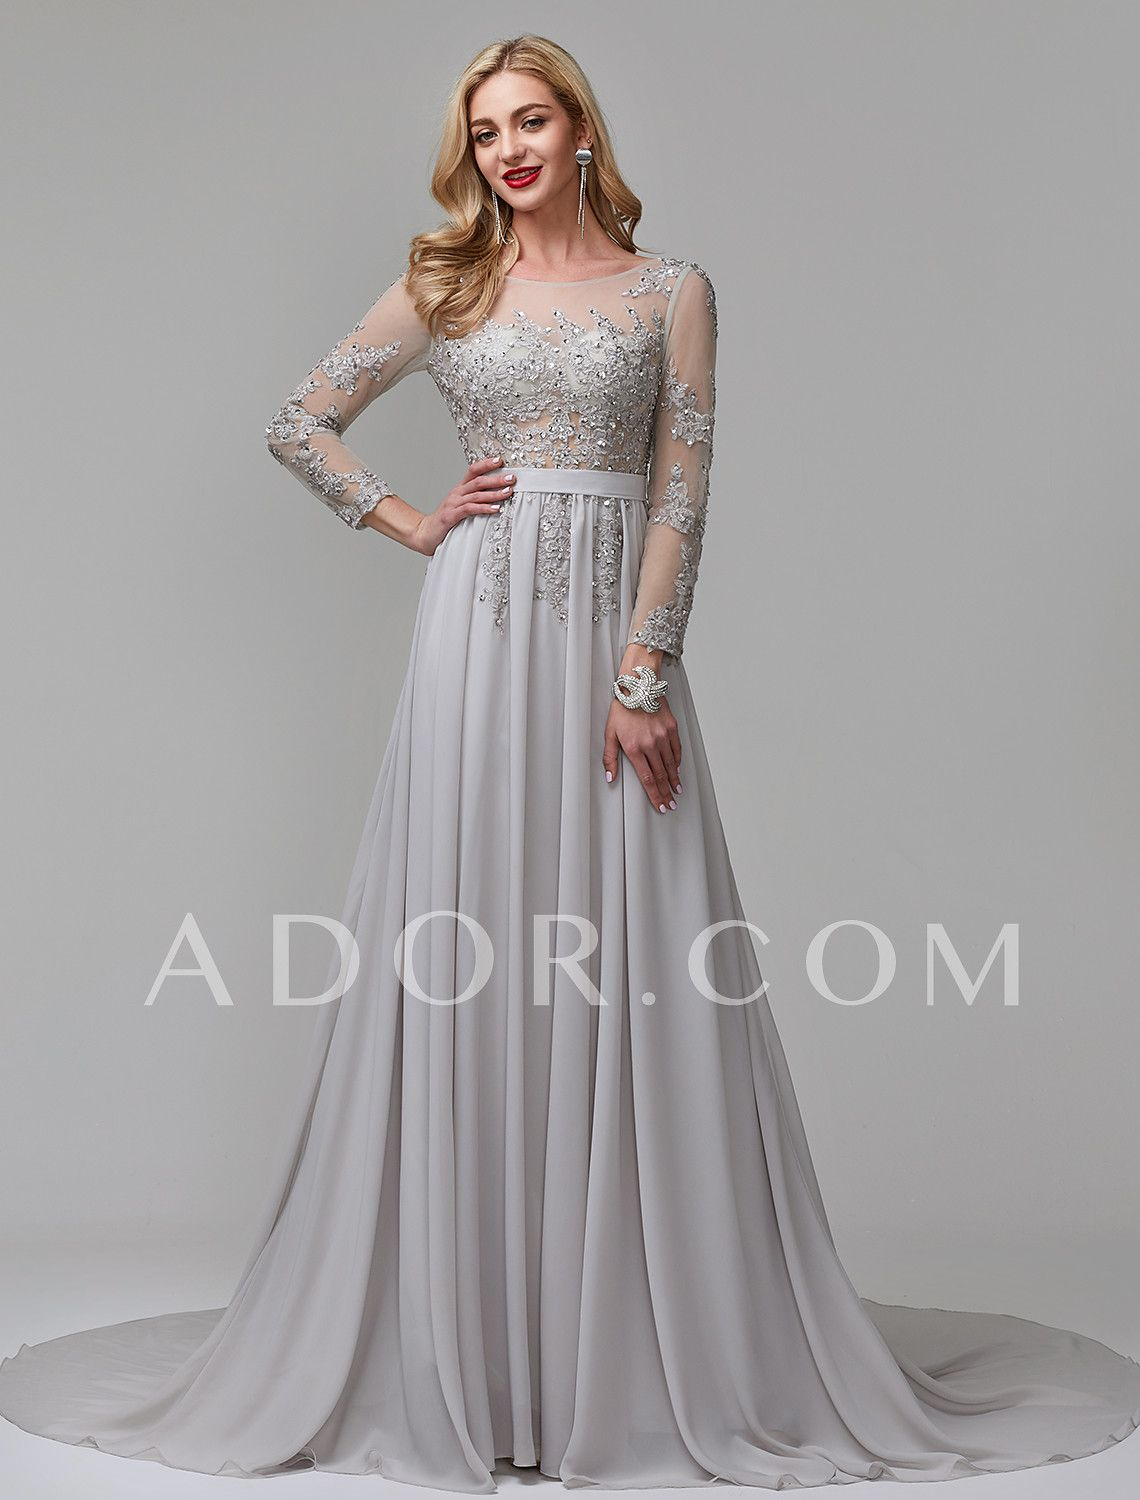 7dc8a2e57ab1 ADOR Evening Dress A-Line Illusion Neck Chapel Train Chiffon / Lace Over  Tulle See Through with Appliques / Pleats 7035206 2019 – $119.99